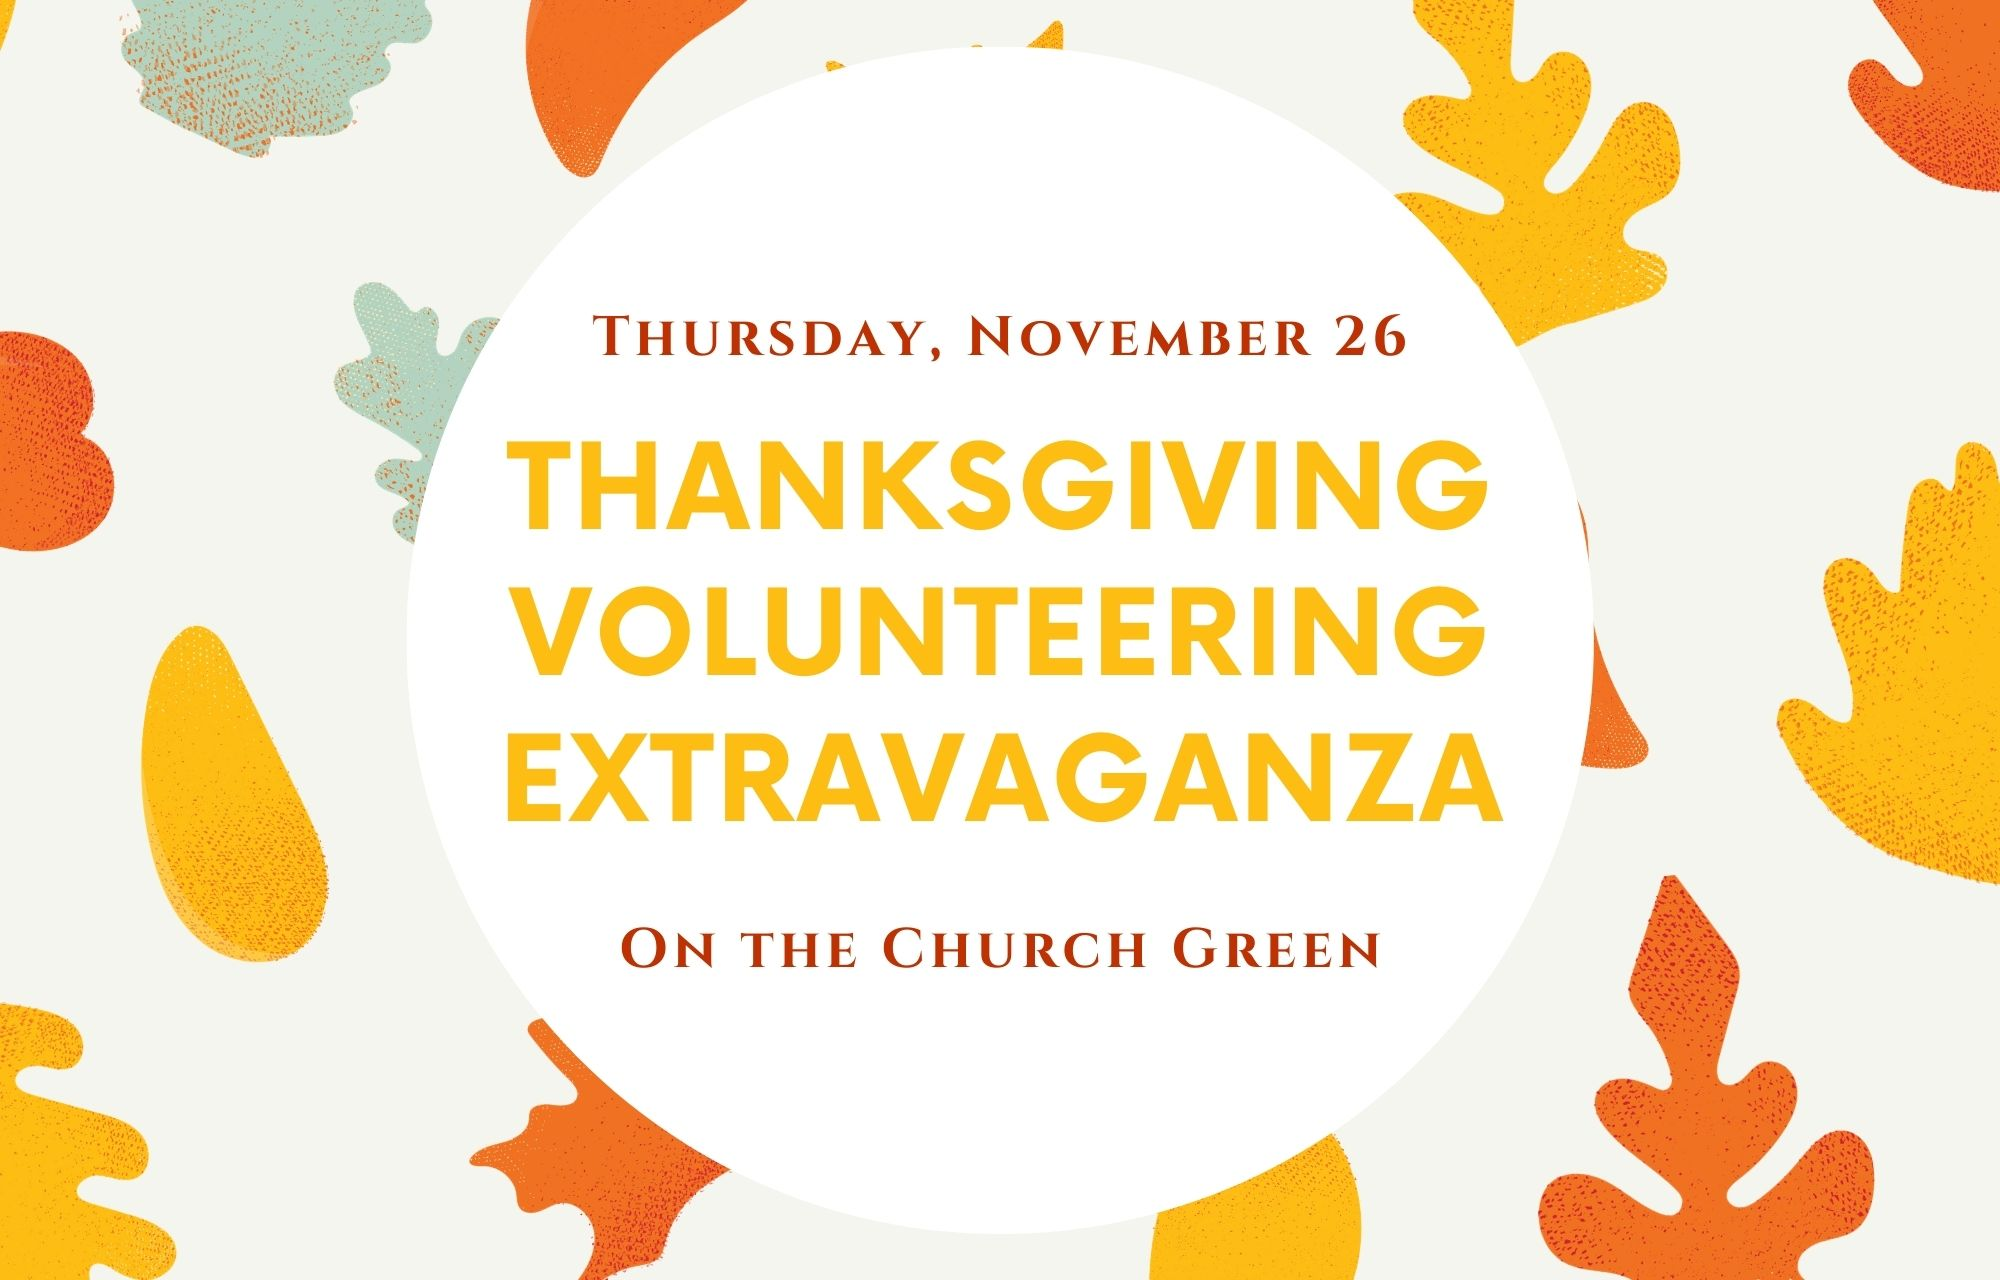 Thanksgiving Volunteering Extravaganza: November 26